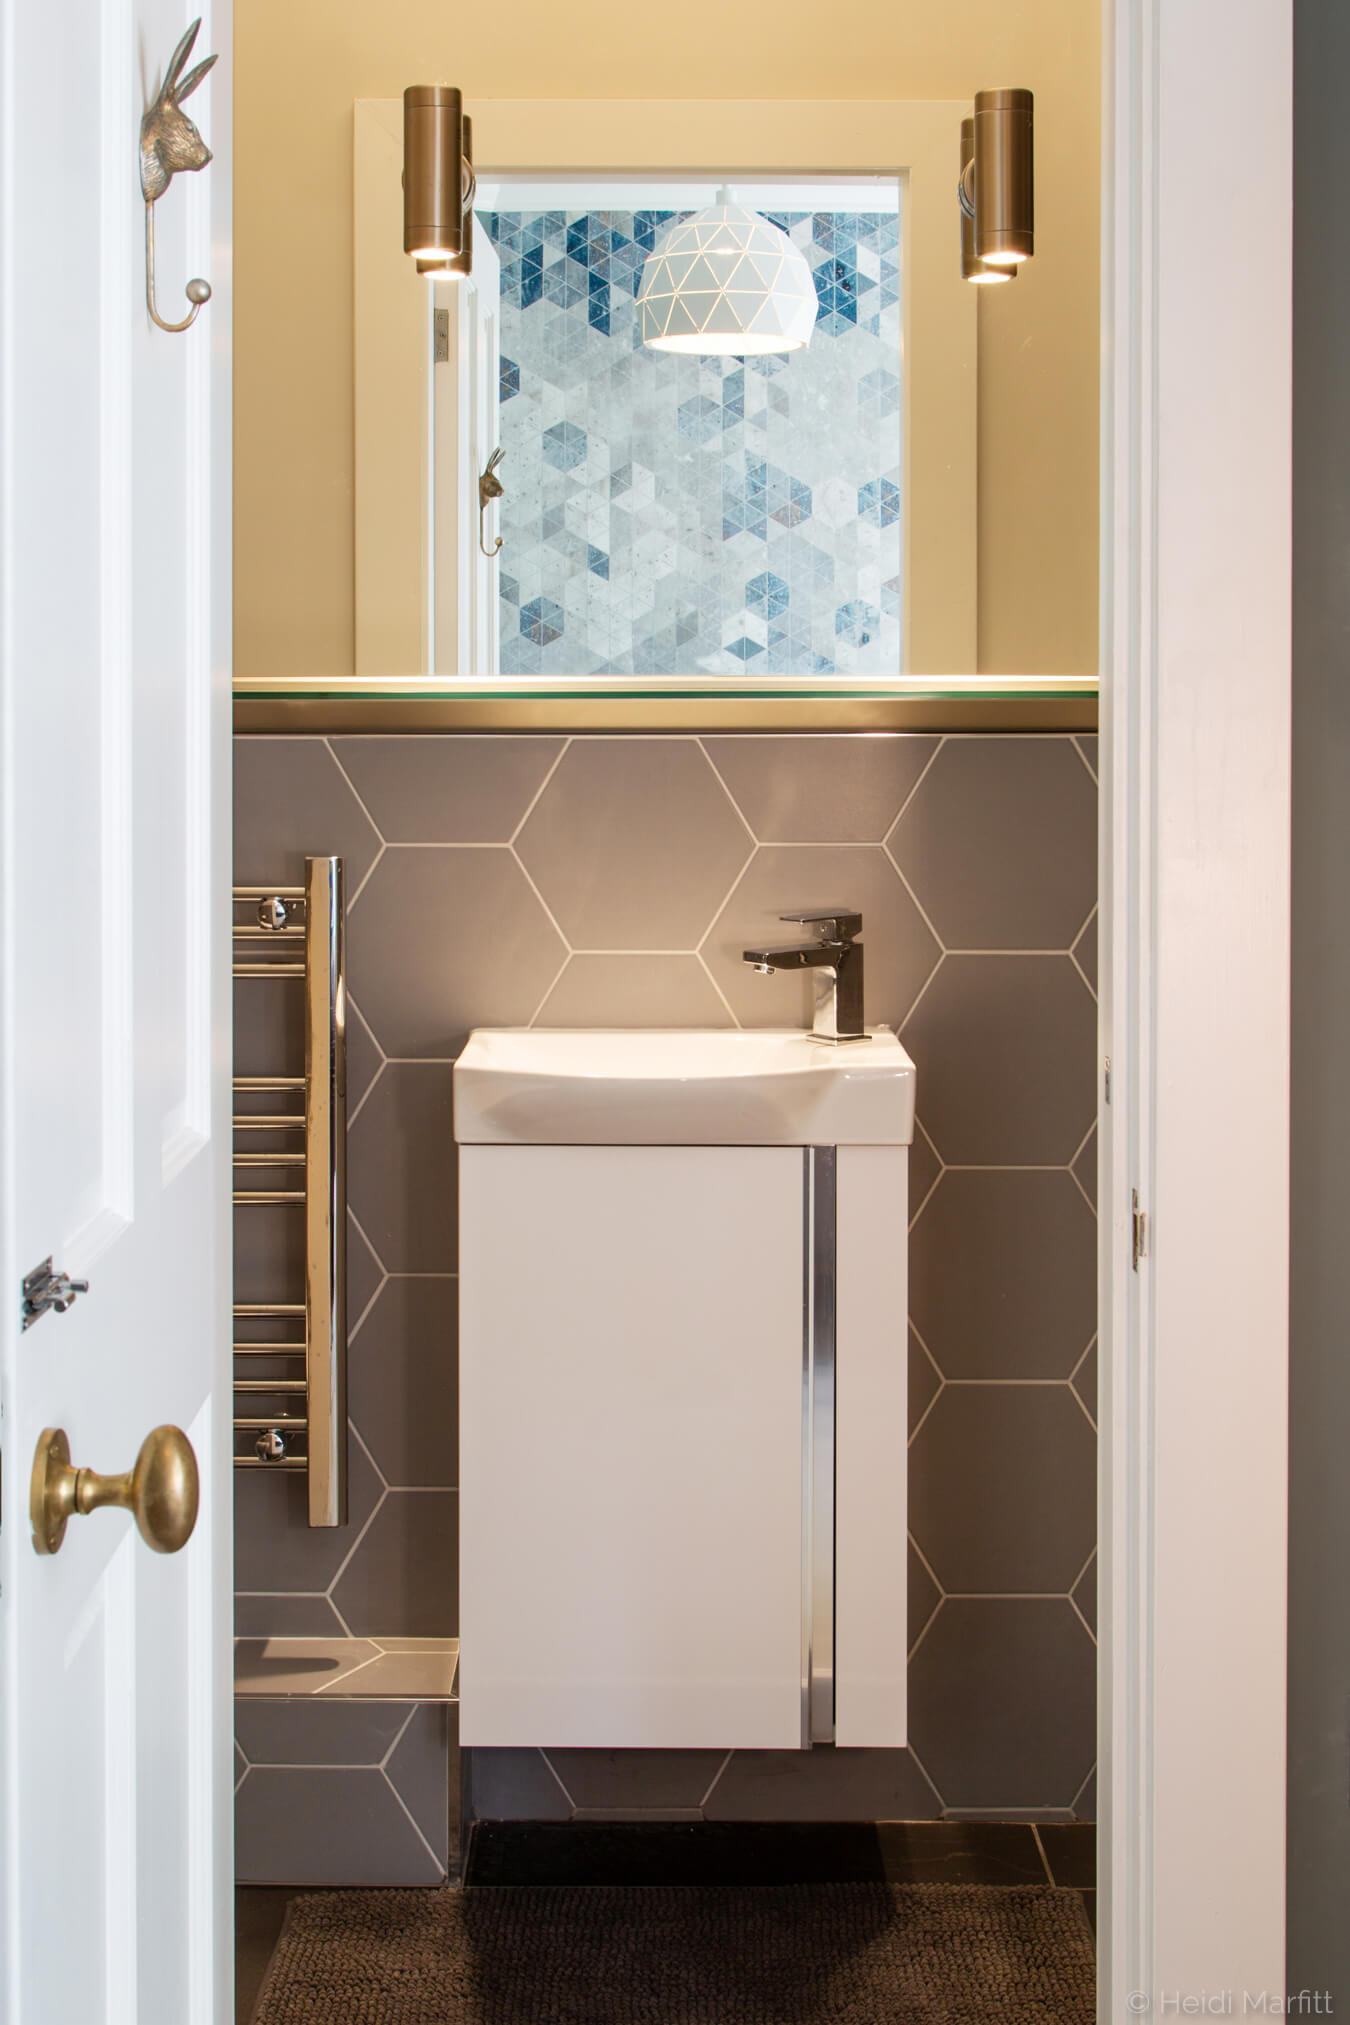 Hexagon wall tiles and an oversized mirror add a dash of style to this en suite